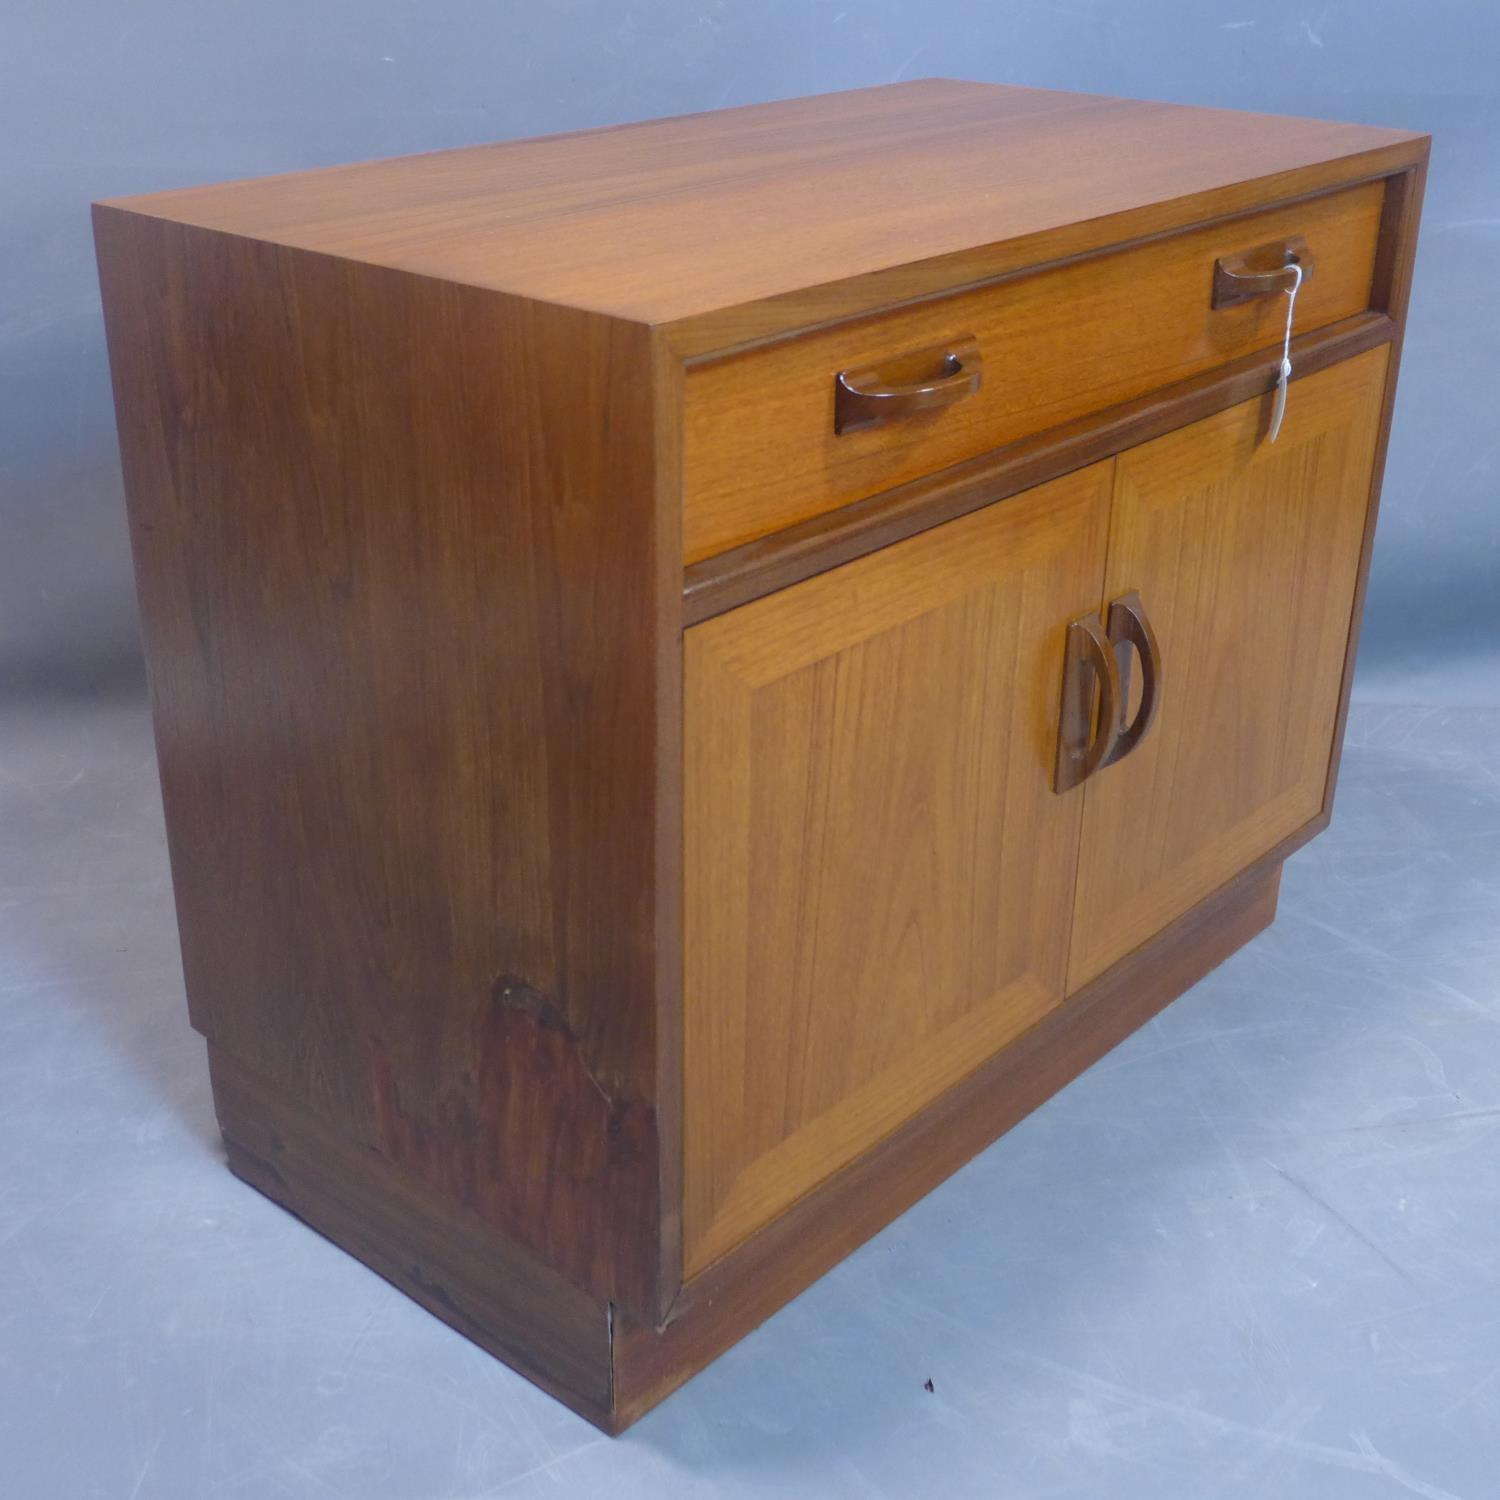 A G-plan teak cabinet, with one long drawer above two cupboard doors, on pedestal base, label to - Image 2 of 3